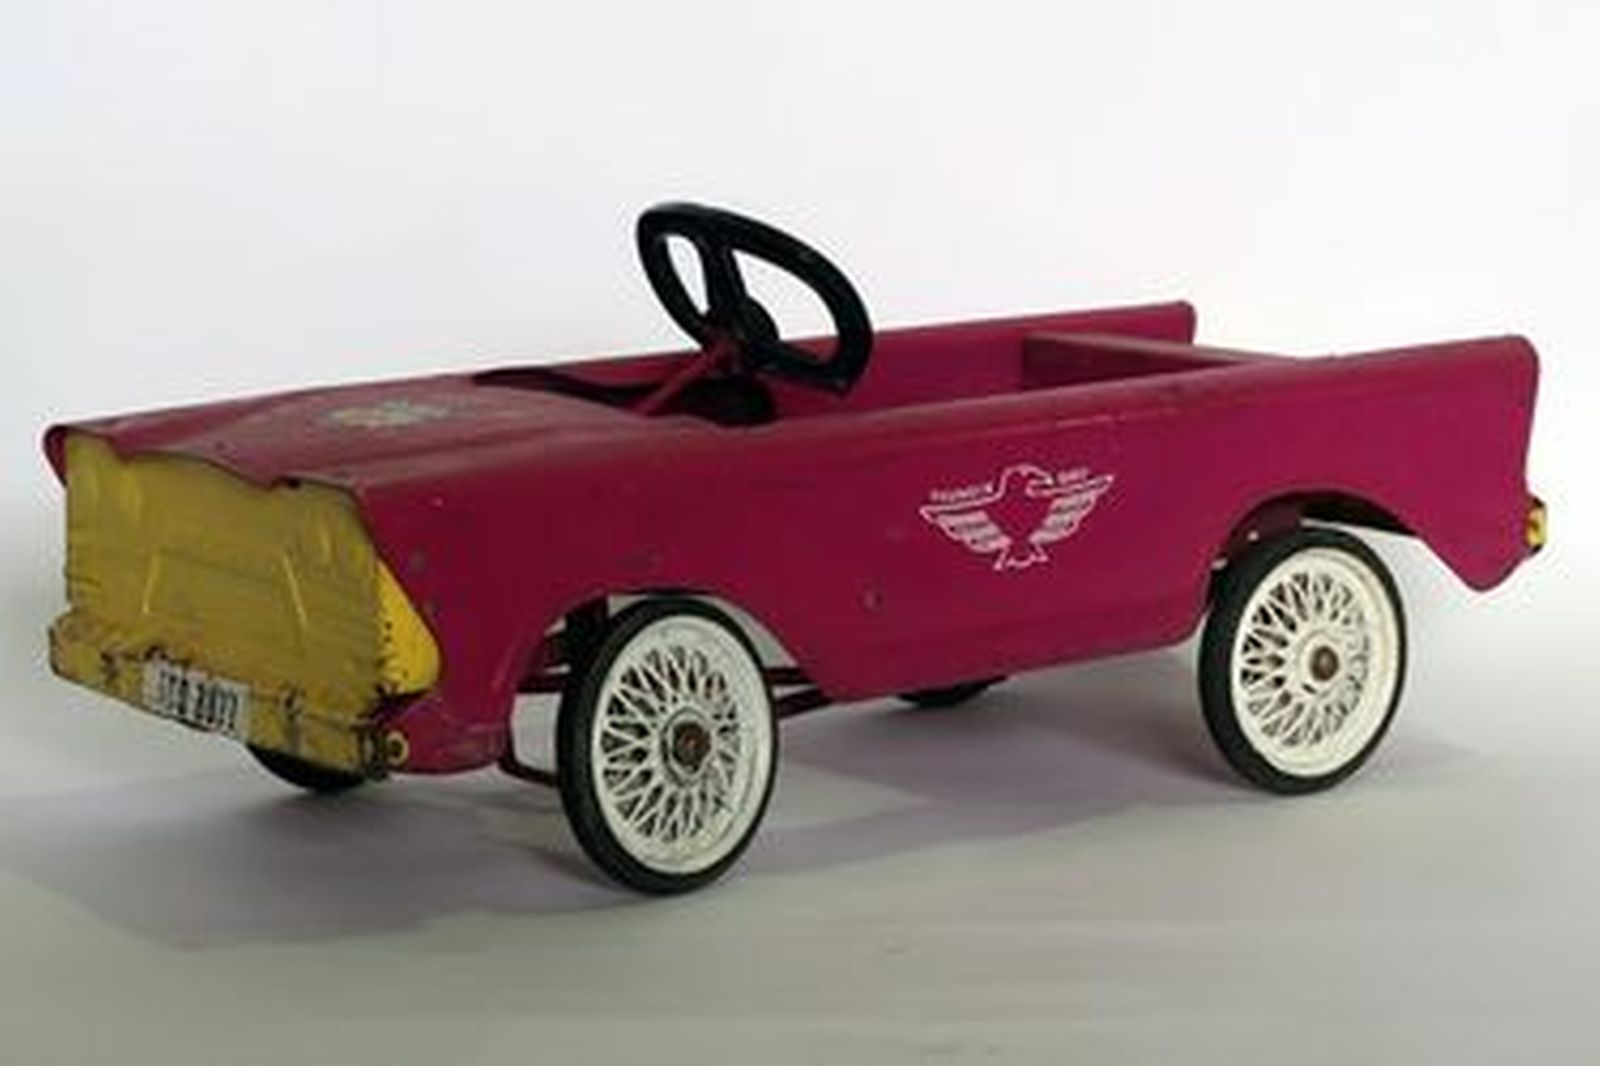 Child's Pedal Car - Triang Pink/Yellow (Metal) 85 x 38 x 26 cm